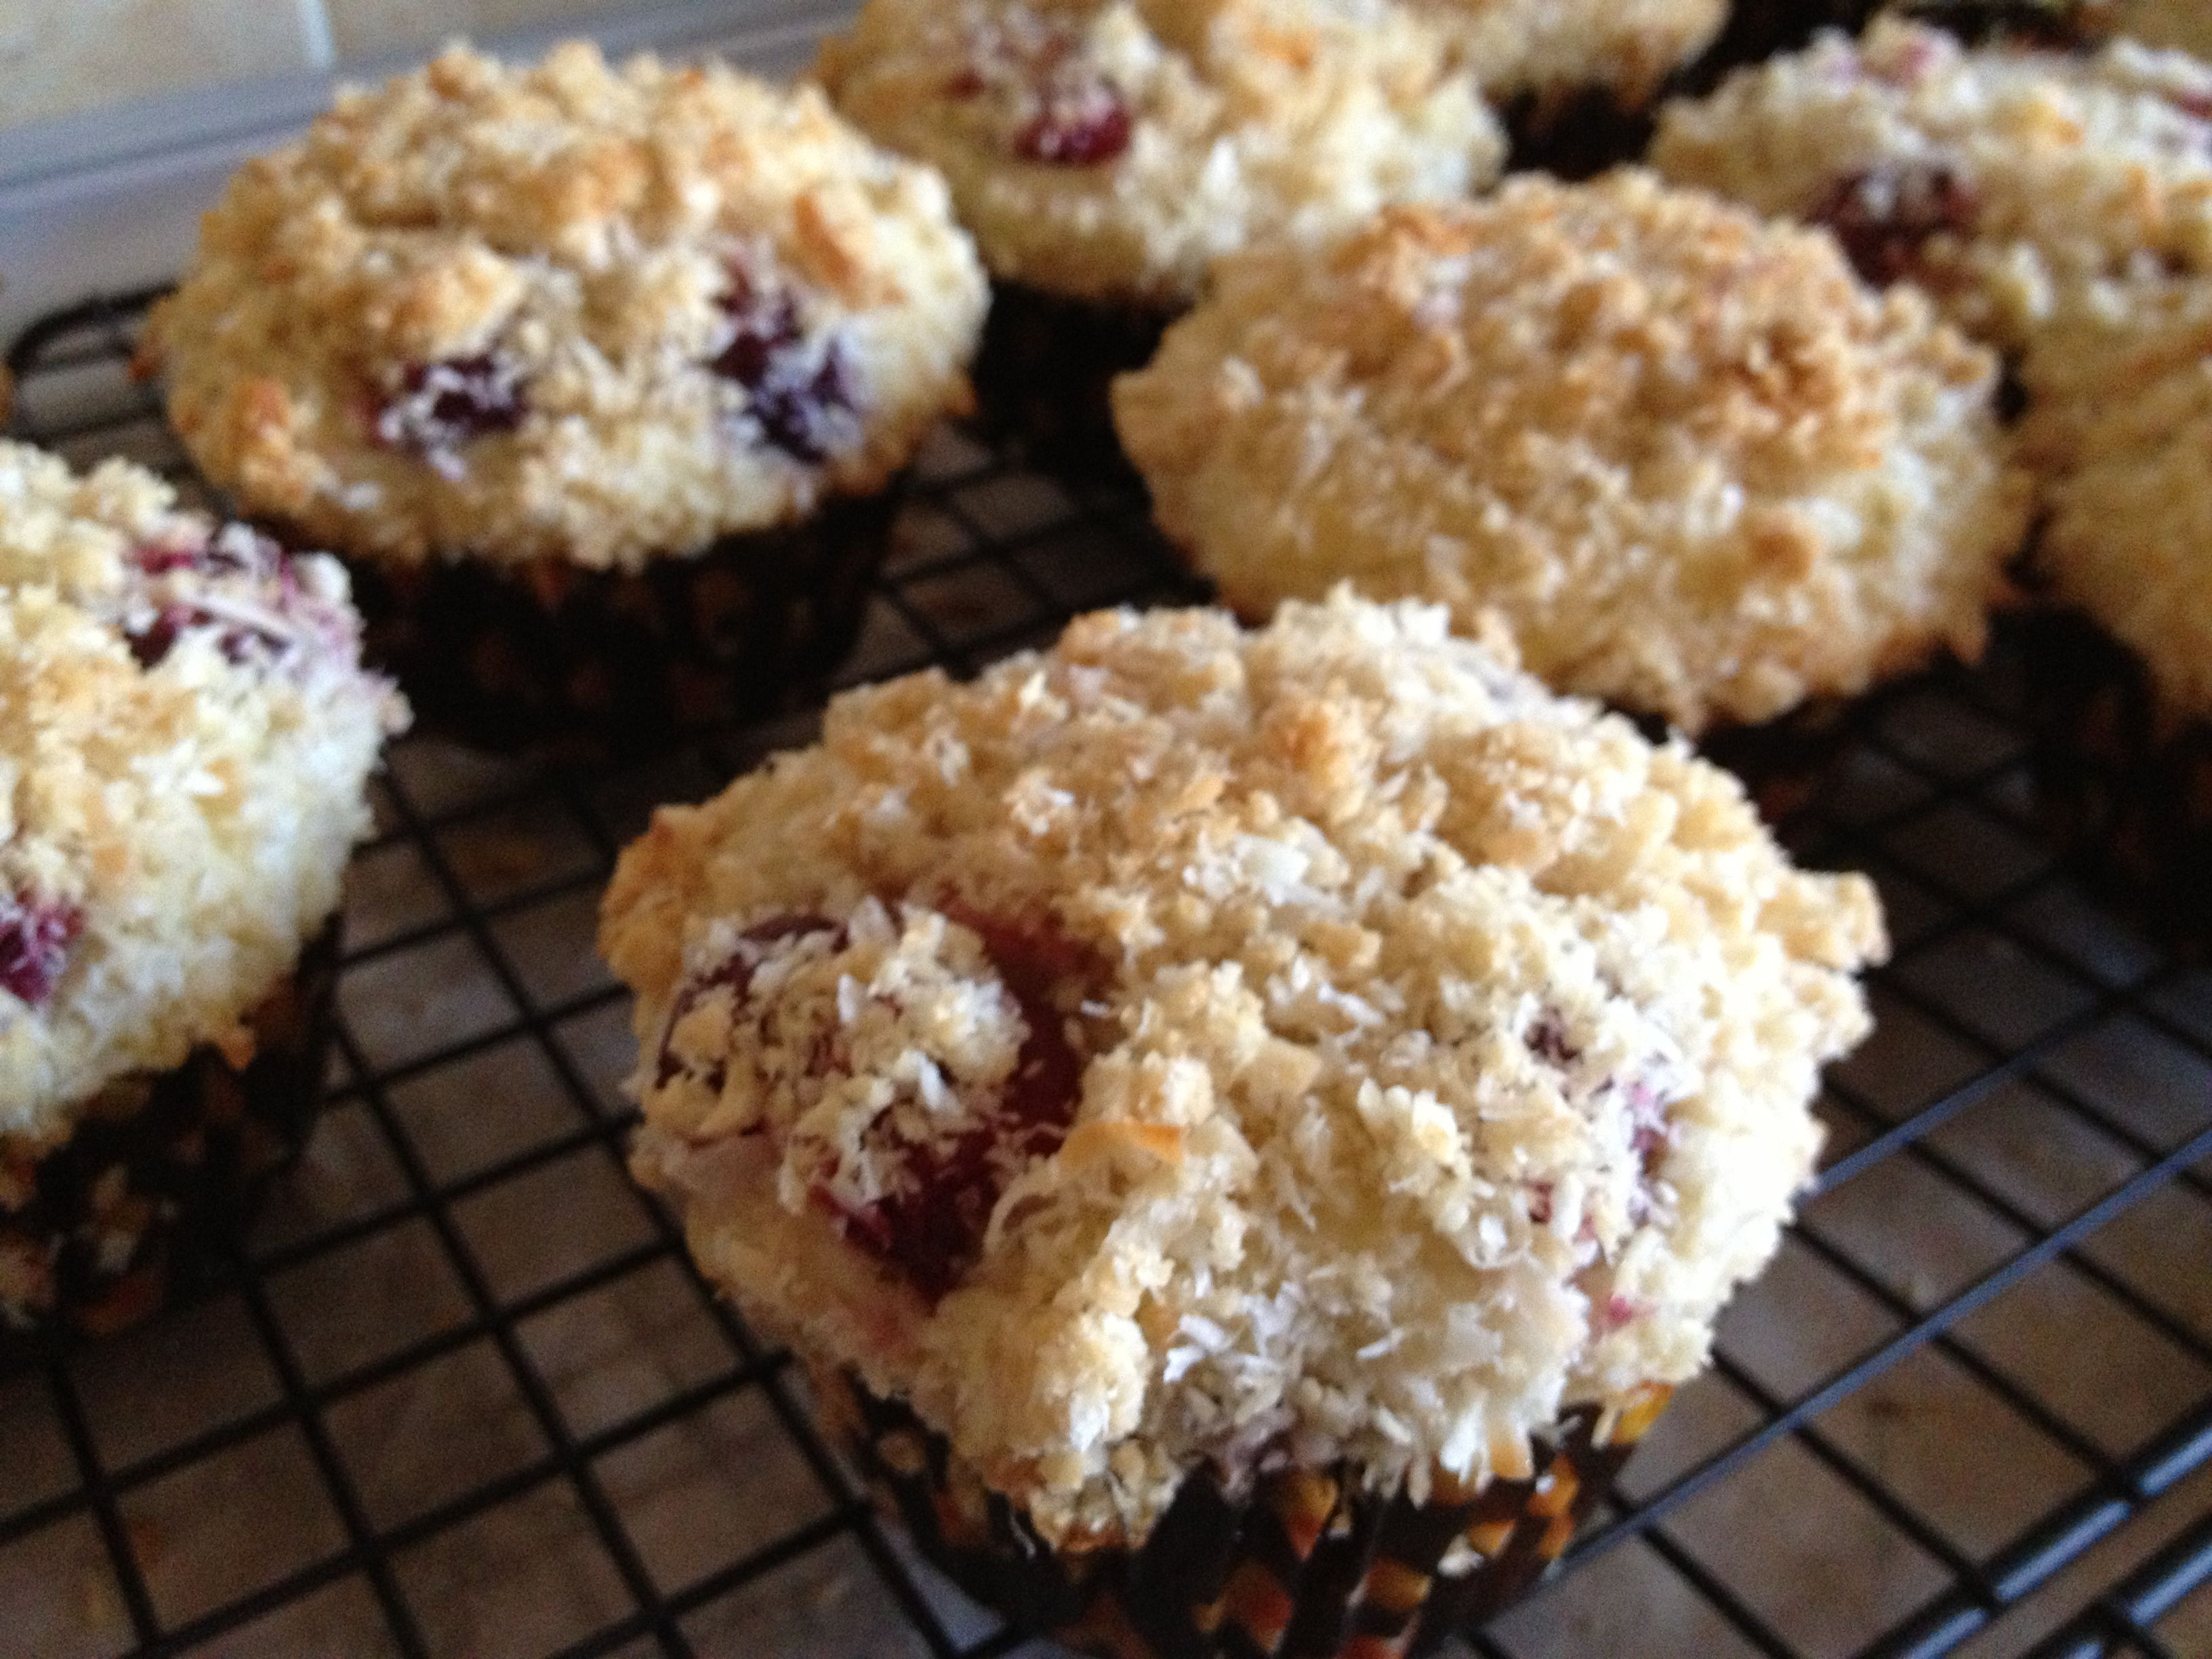 12 Sour cherry muffins with coconut streusel  Streusel: mix 1/3 cup sugar + 1/3 flour. Rub in 1/4 cup cold butter. Stir in 1/2 cup sweetened flaked coconut. Muffins: stir together 2 cups flour + 1/2 cup sugar + 4 tsp baking powder + 1/2 tsp salt. In other bowl whisk together 1/4 cup butter (melted) + 2 large eegs + 1 cup milk. Stir in the dry mixture. Spoon batter into each muffin cup filling 1/3 full. Drop few cherries. Spoon more batter. Sprinkle 1 TBSP of the streusel. Bake at 375F for…